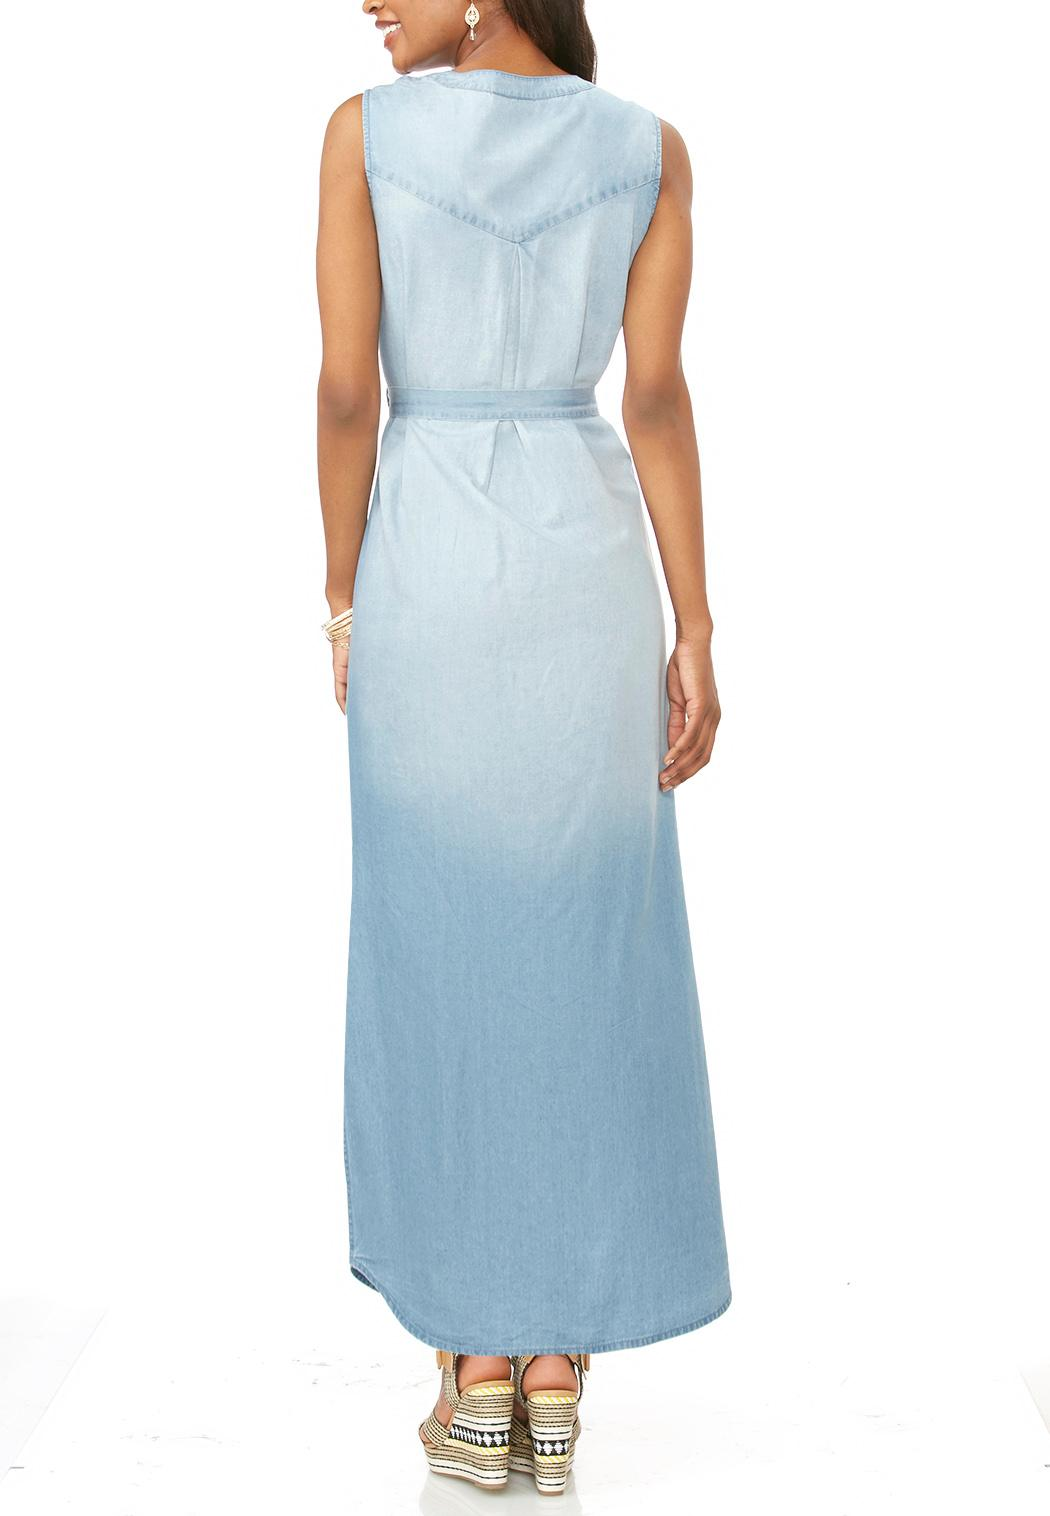 Belted chambray maxi dress maxi cato fashions for Belted chambray shirt dress